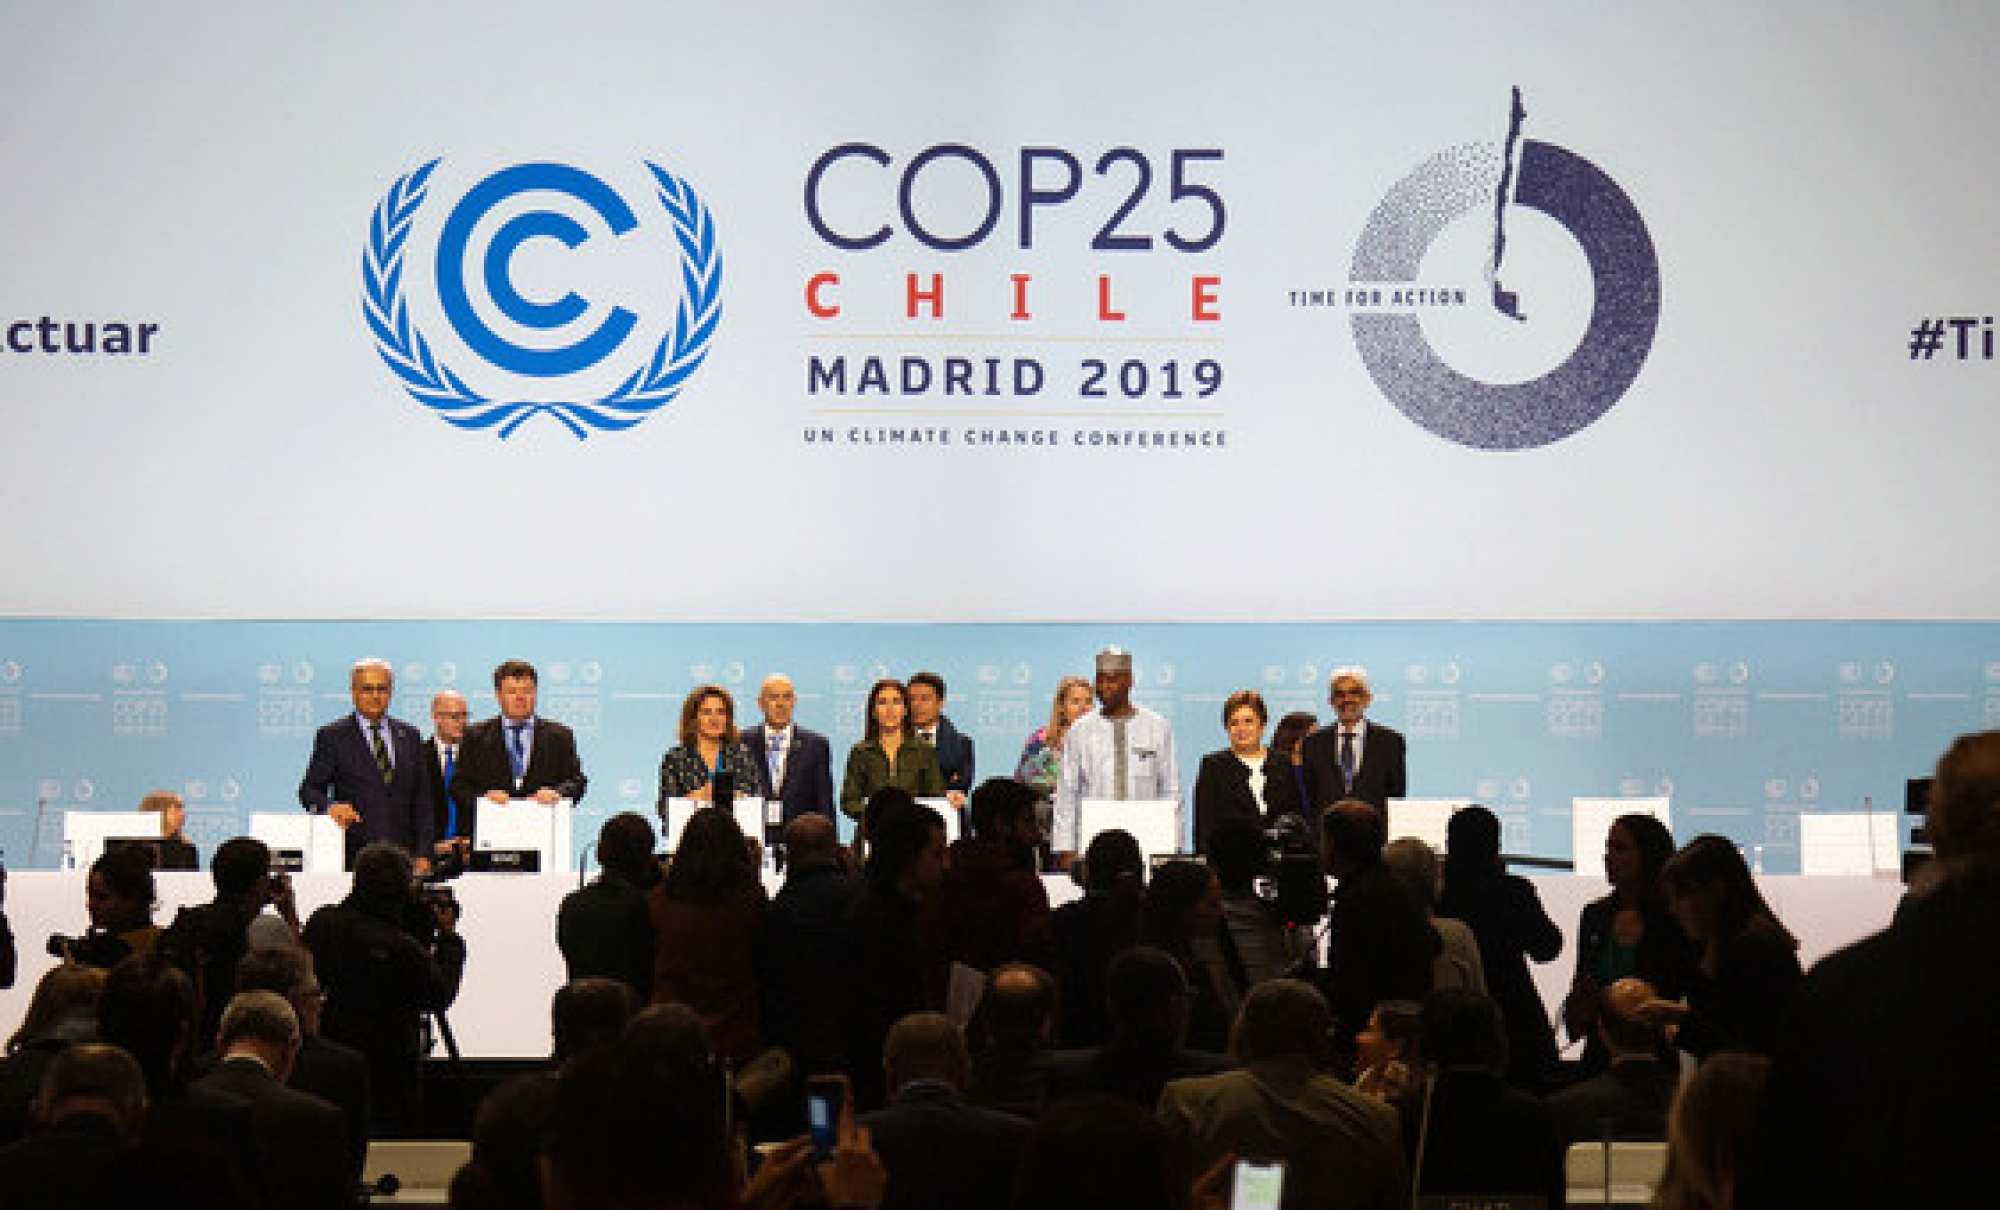 Official Opening Ceremony of the high-level segment of COP25 - the 25th Conference of the Parties to the UN Framework Convention on Climate Change.